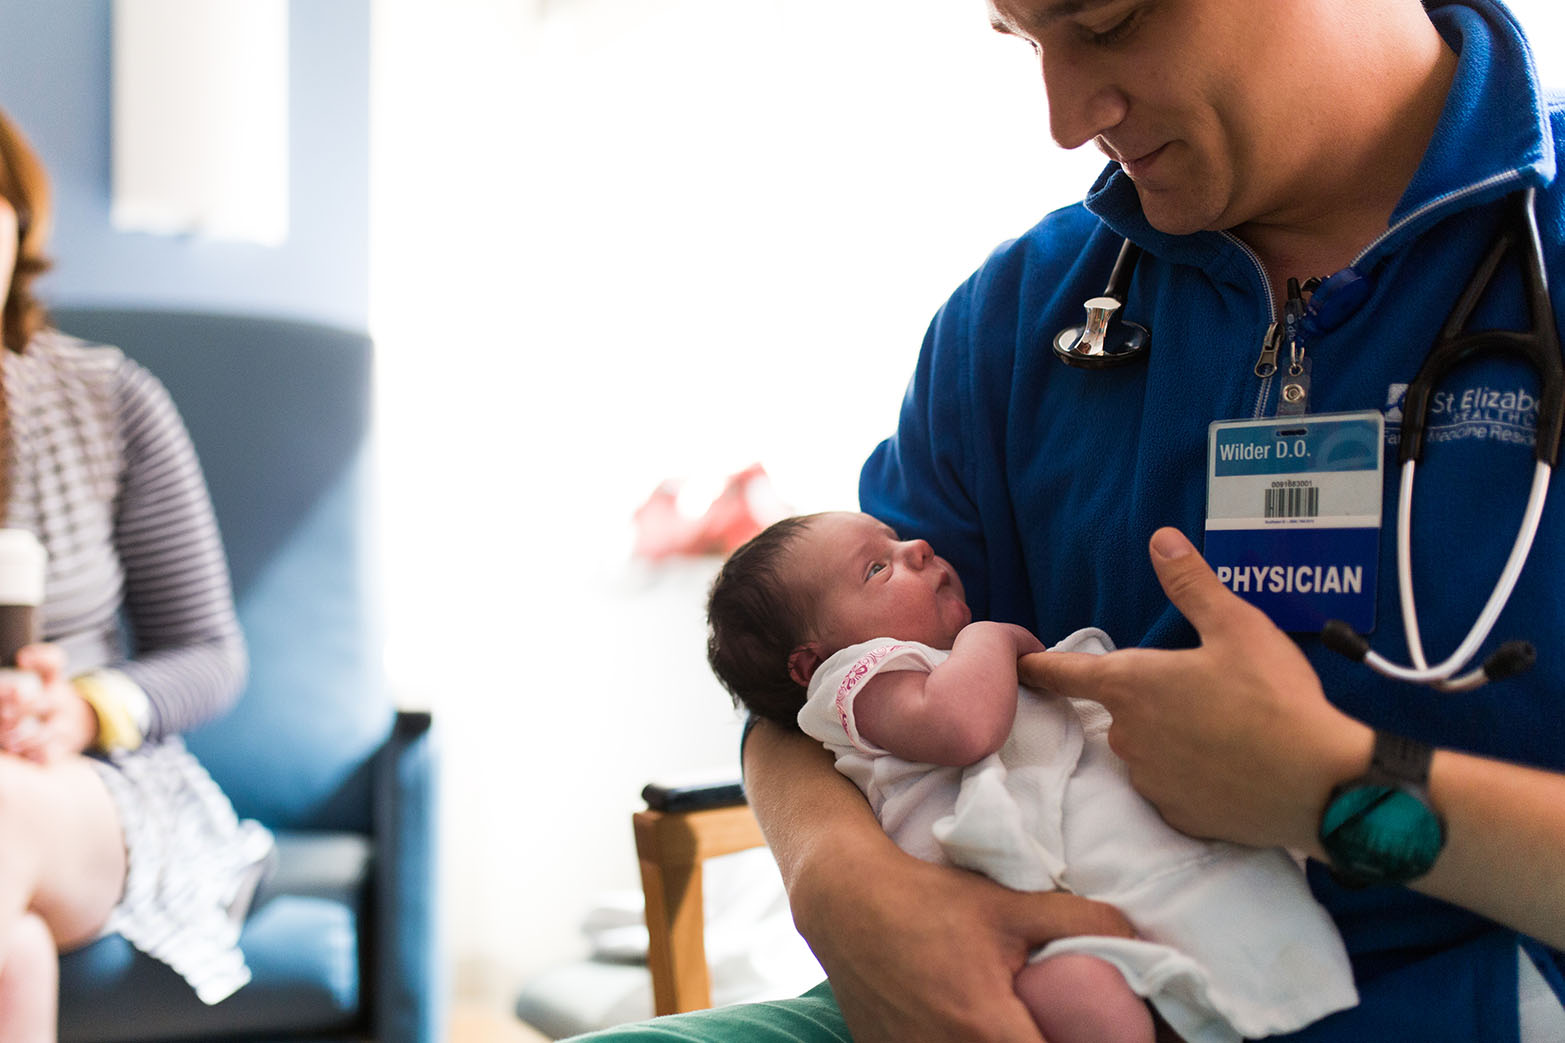 Male doctor holding newborn baby